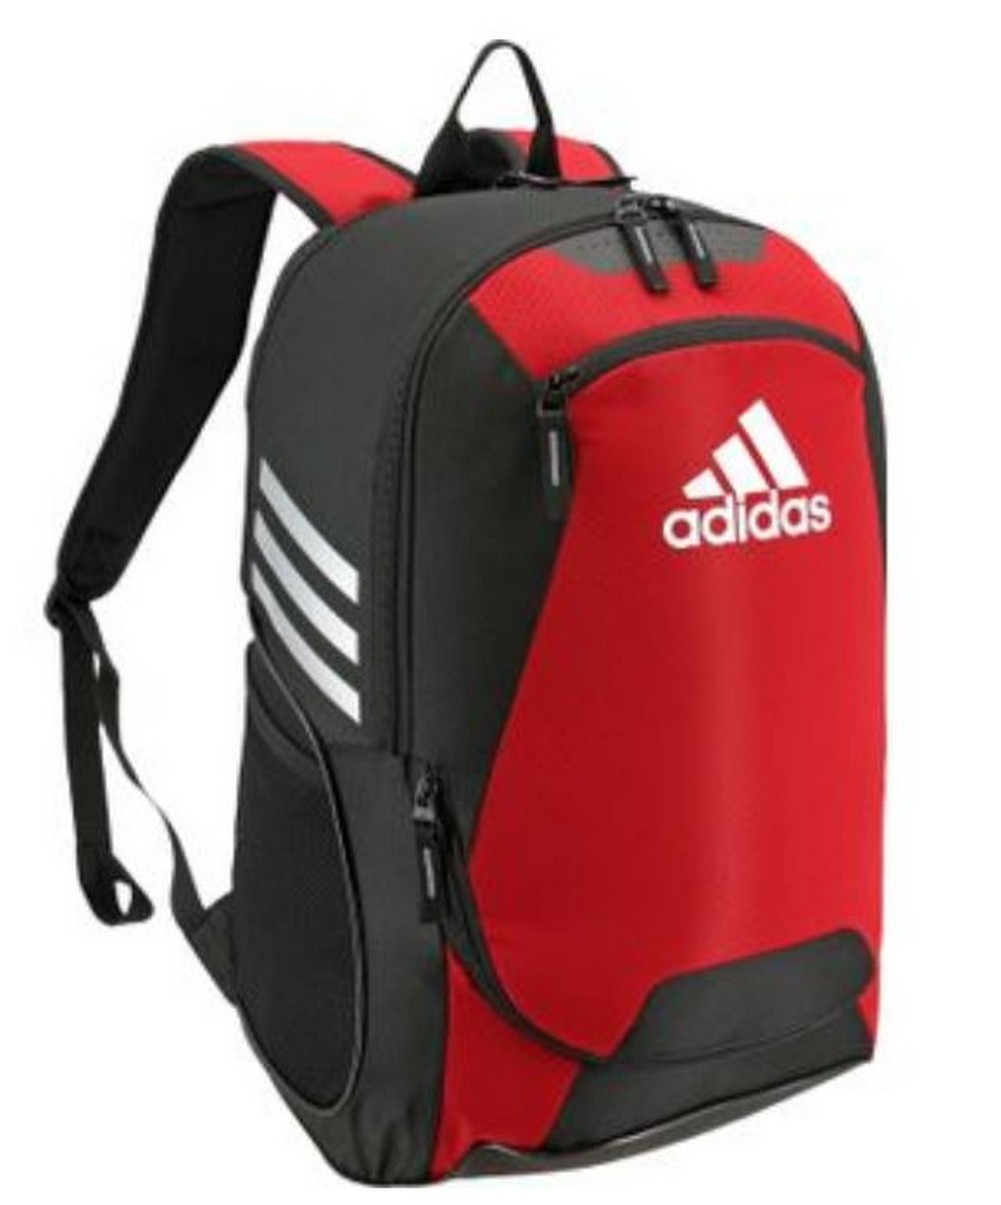 Adidas Stadium II Backpack Fits Soccer Ball Sport Bag 4 ... - photo#8